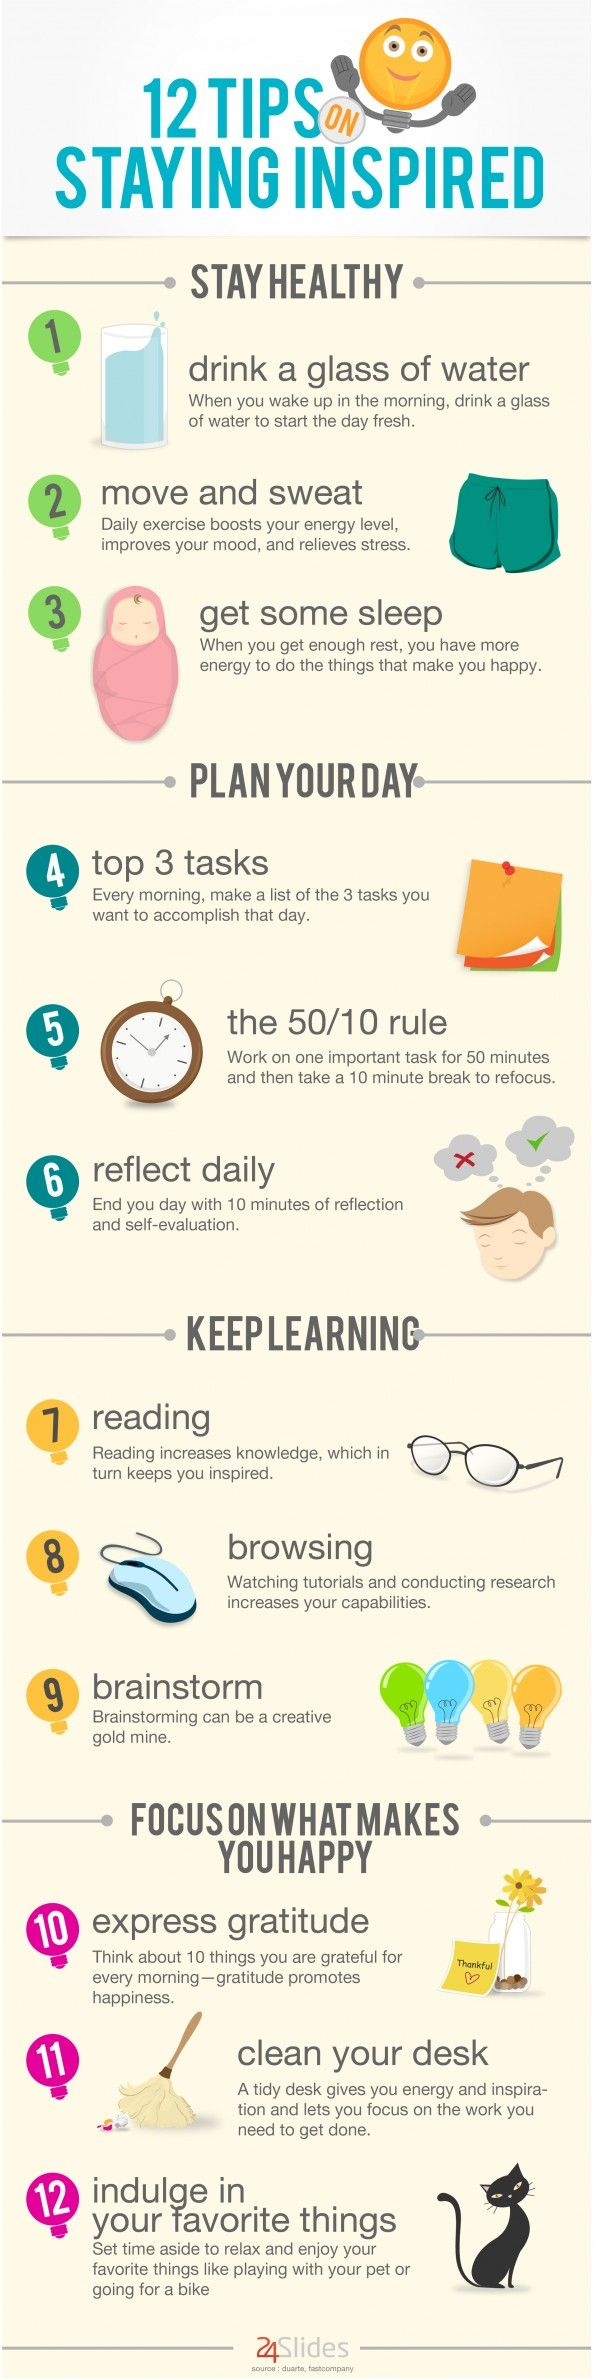 12 Tips To Stay Inspired